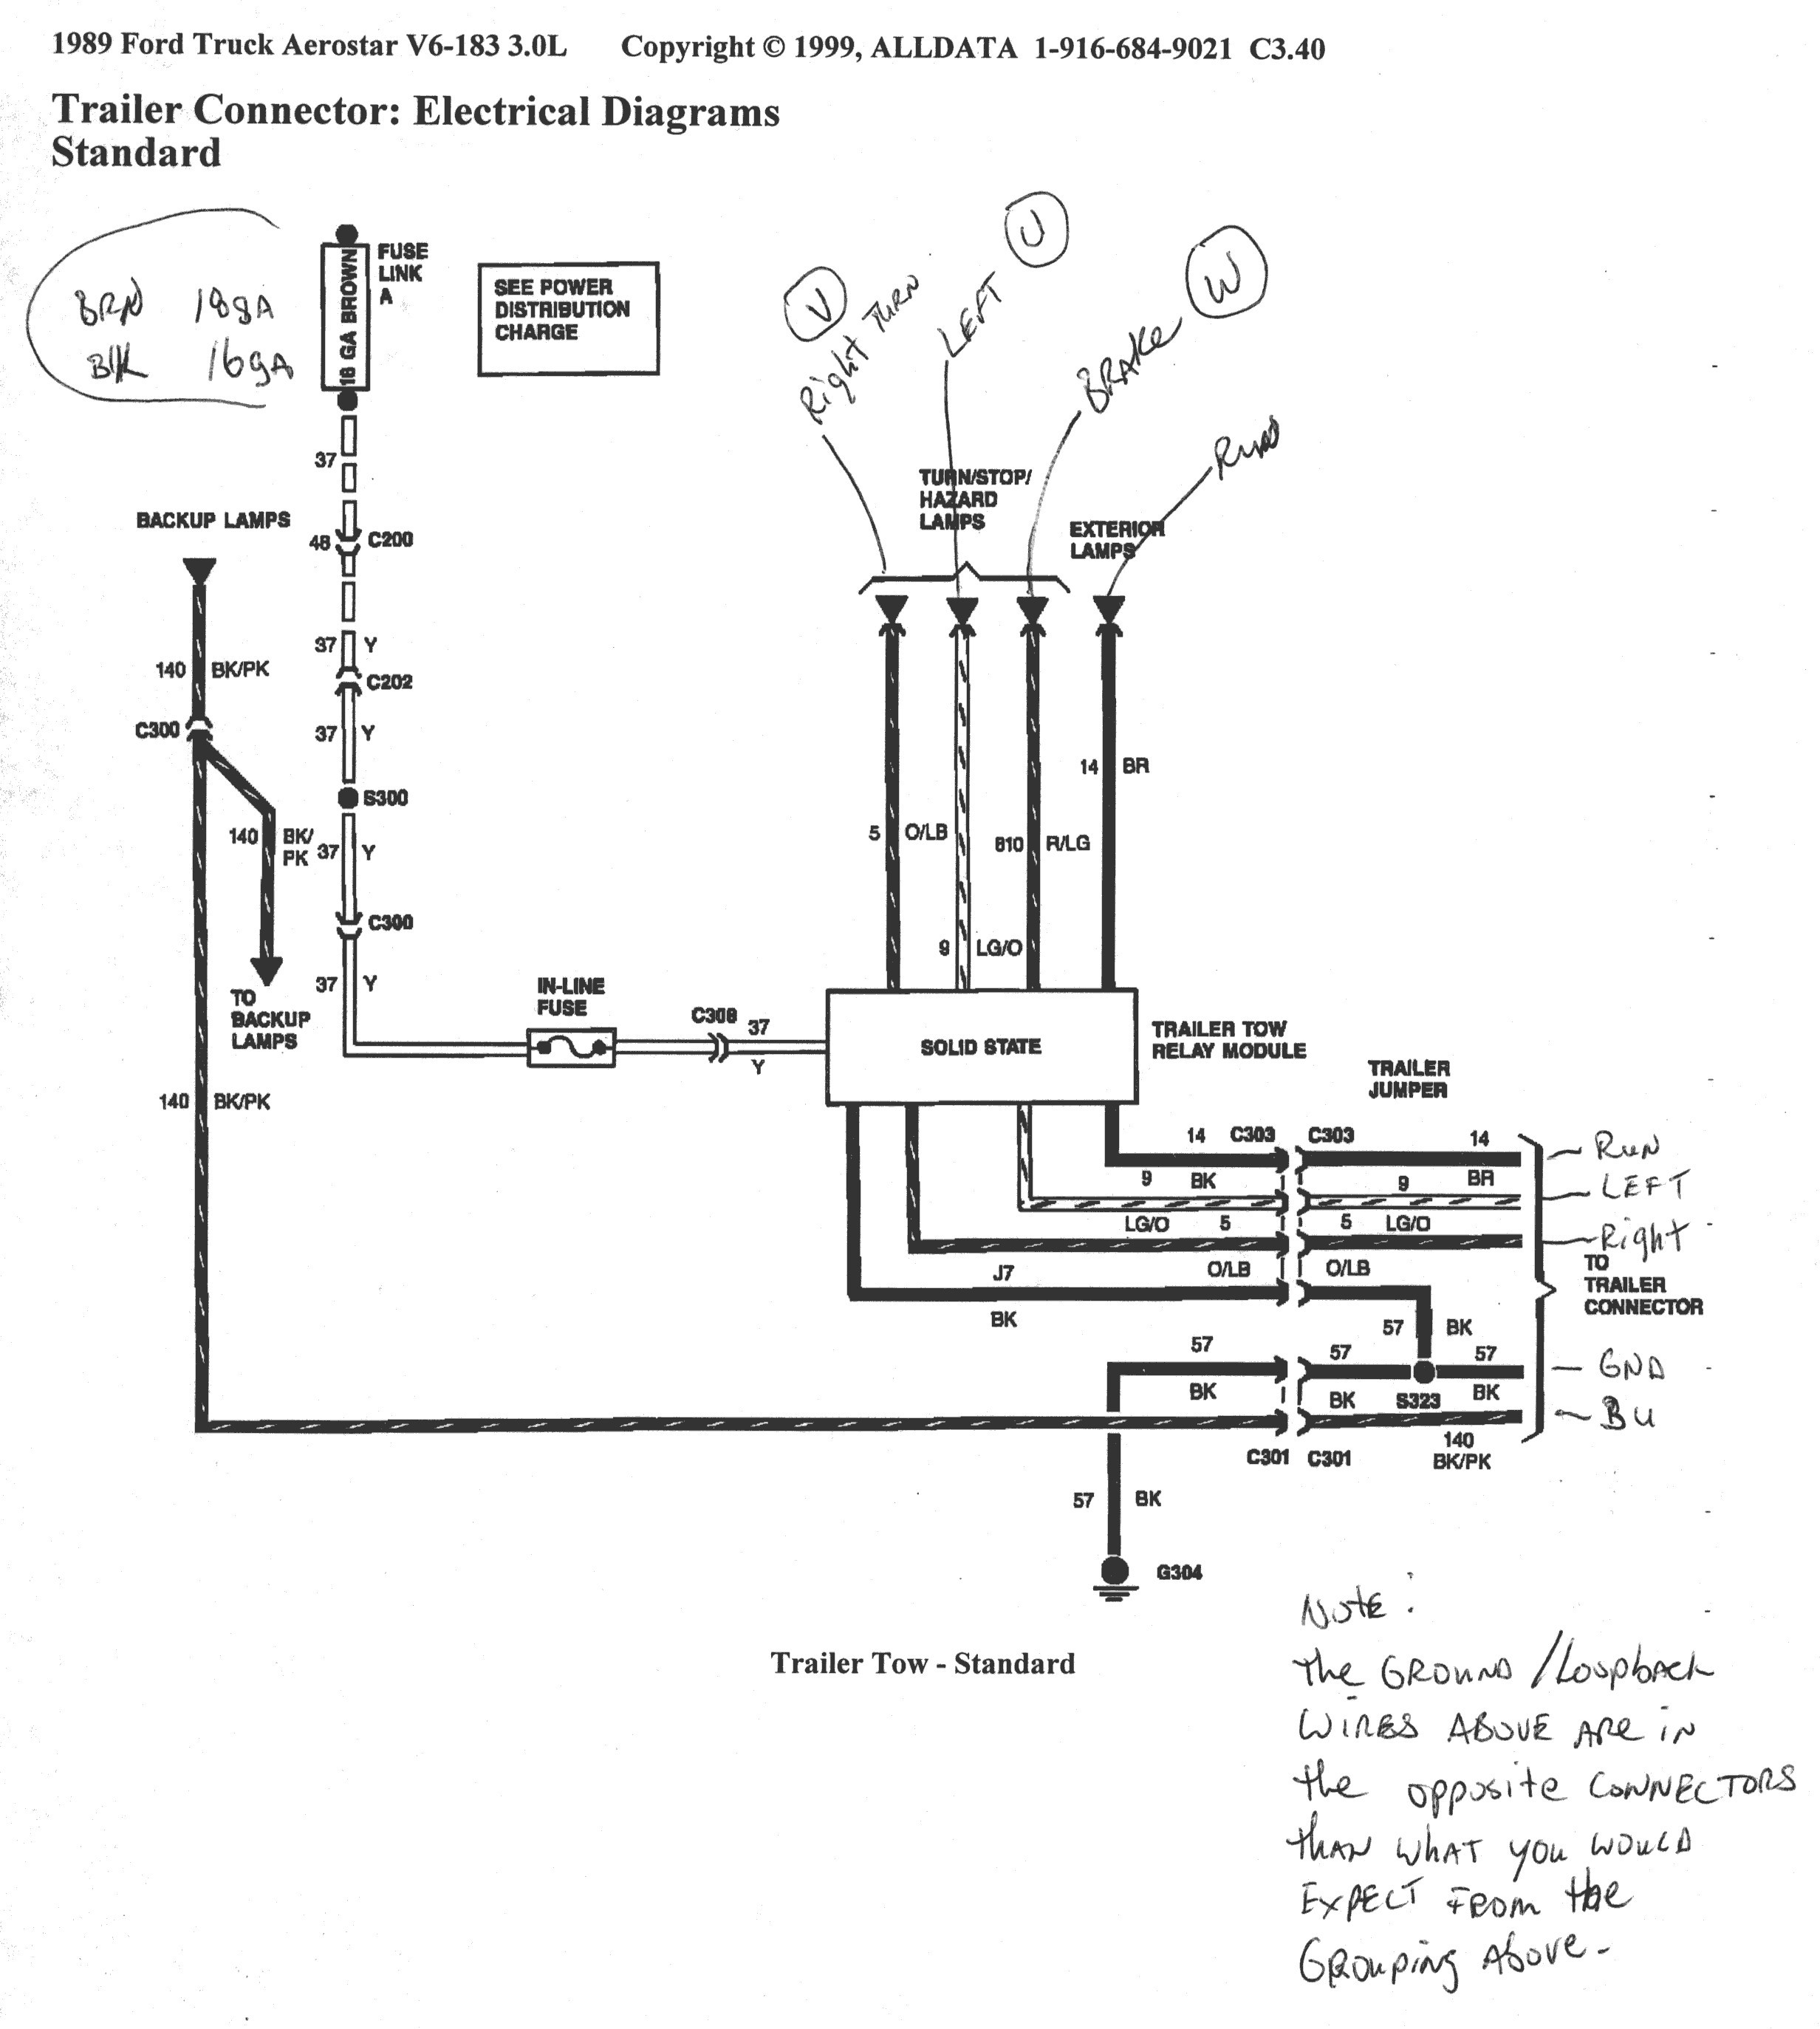 Hopkins Trailer Plug Wiring Diagram from wholefoodsonabudget.com